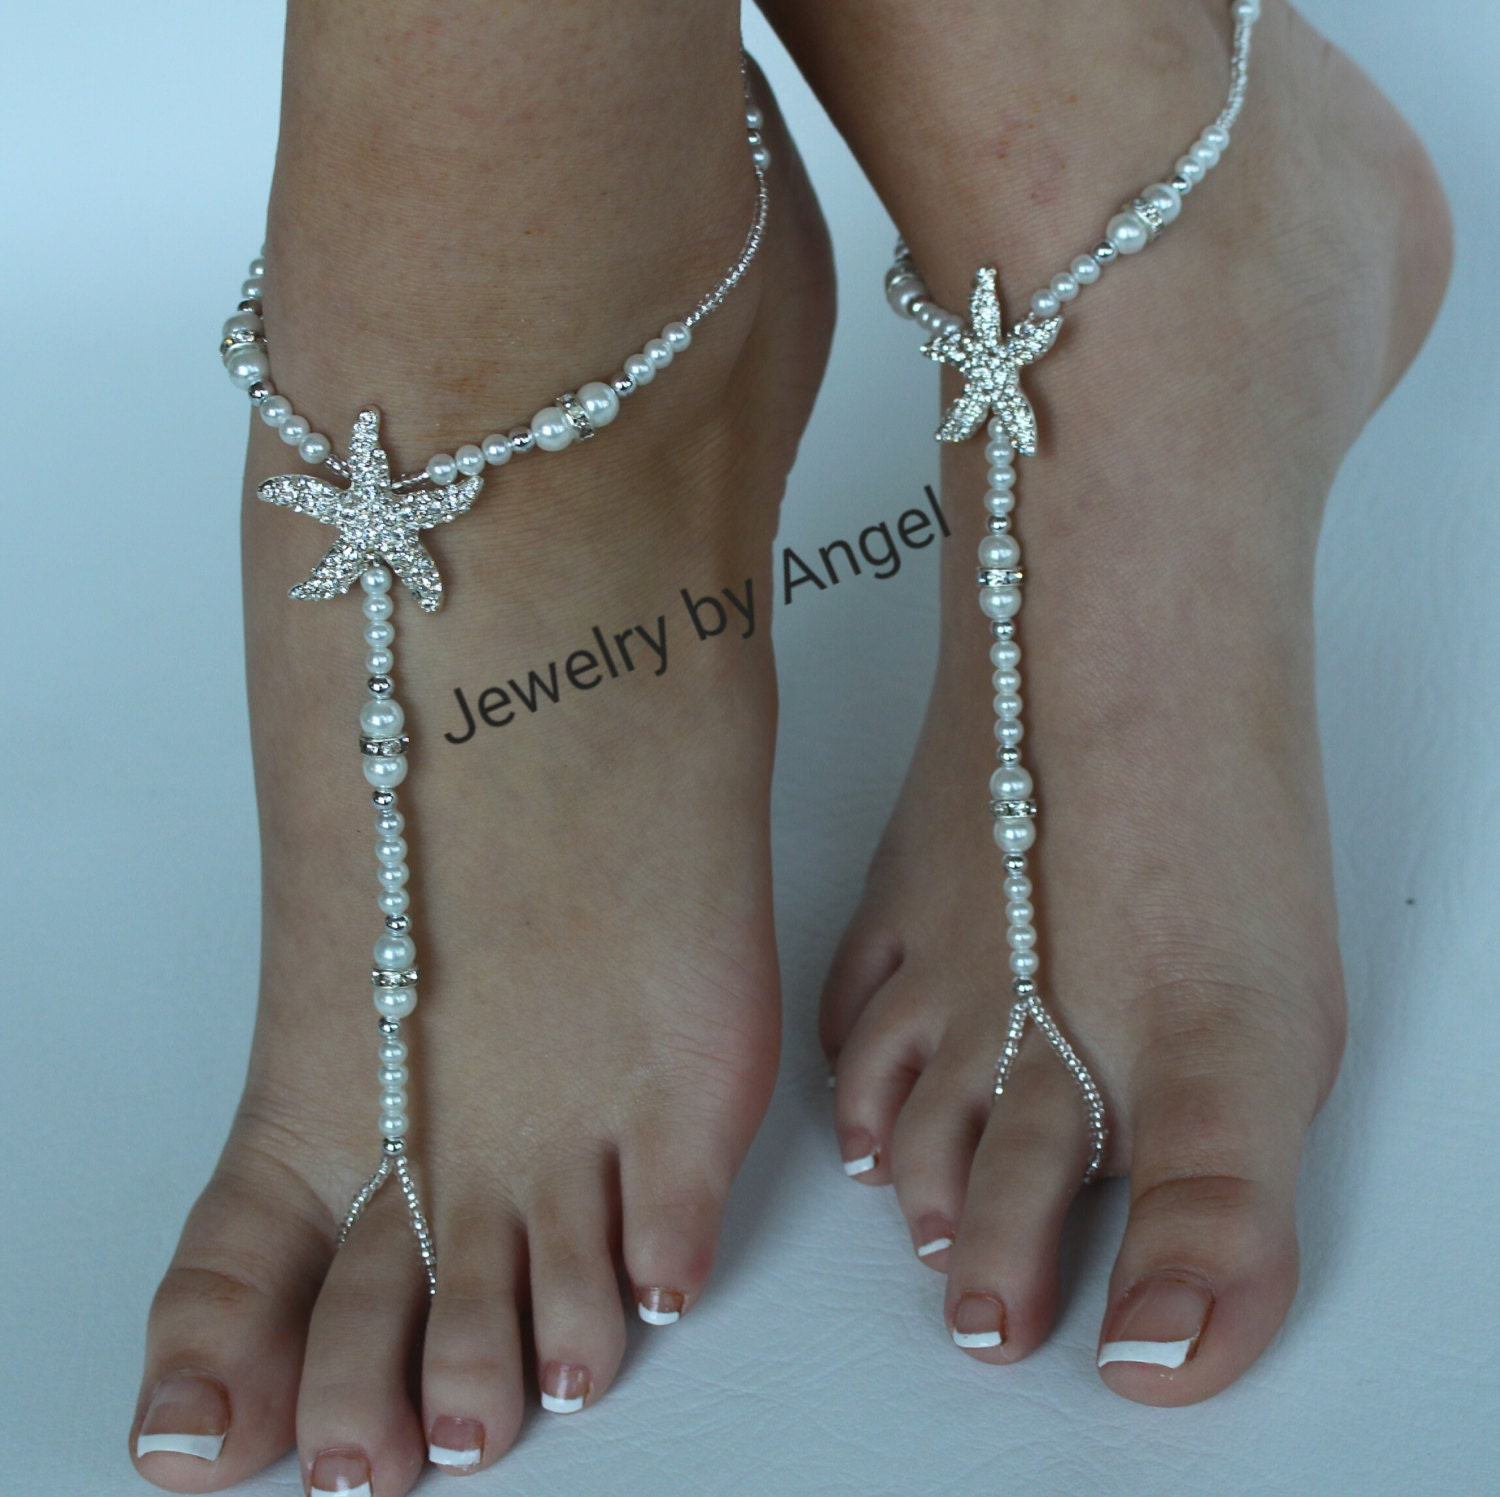 birthday party sandals from chain com robbinlin anklet crystal boho product holiday sexy bracelet leg dhgate for women jewel jewelry wedding